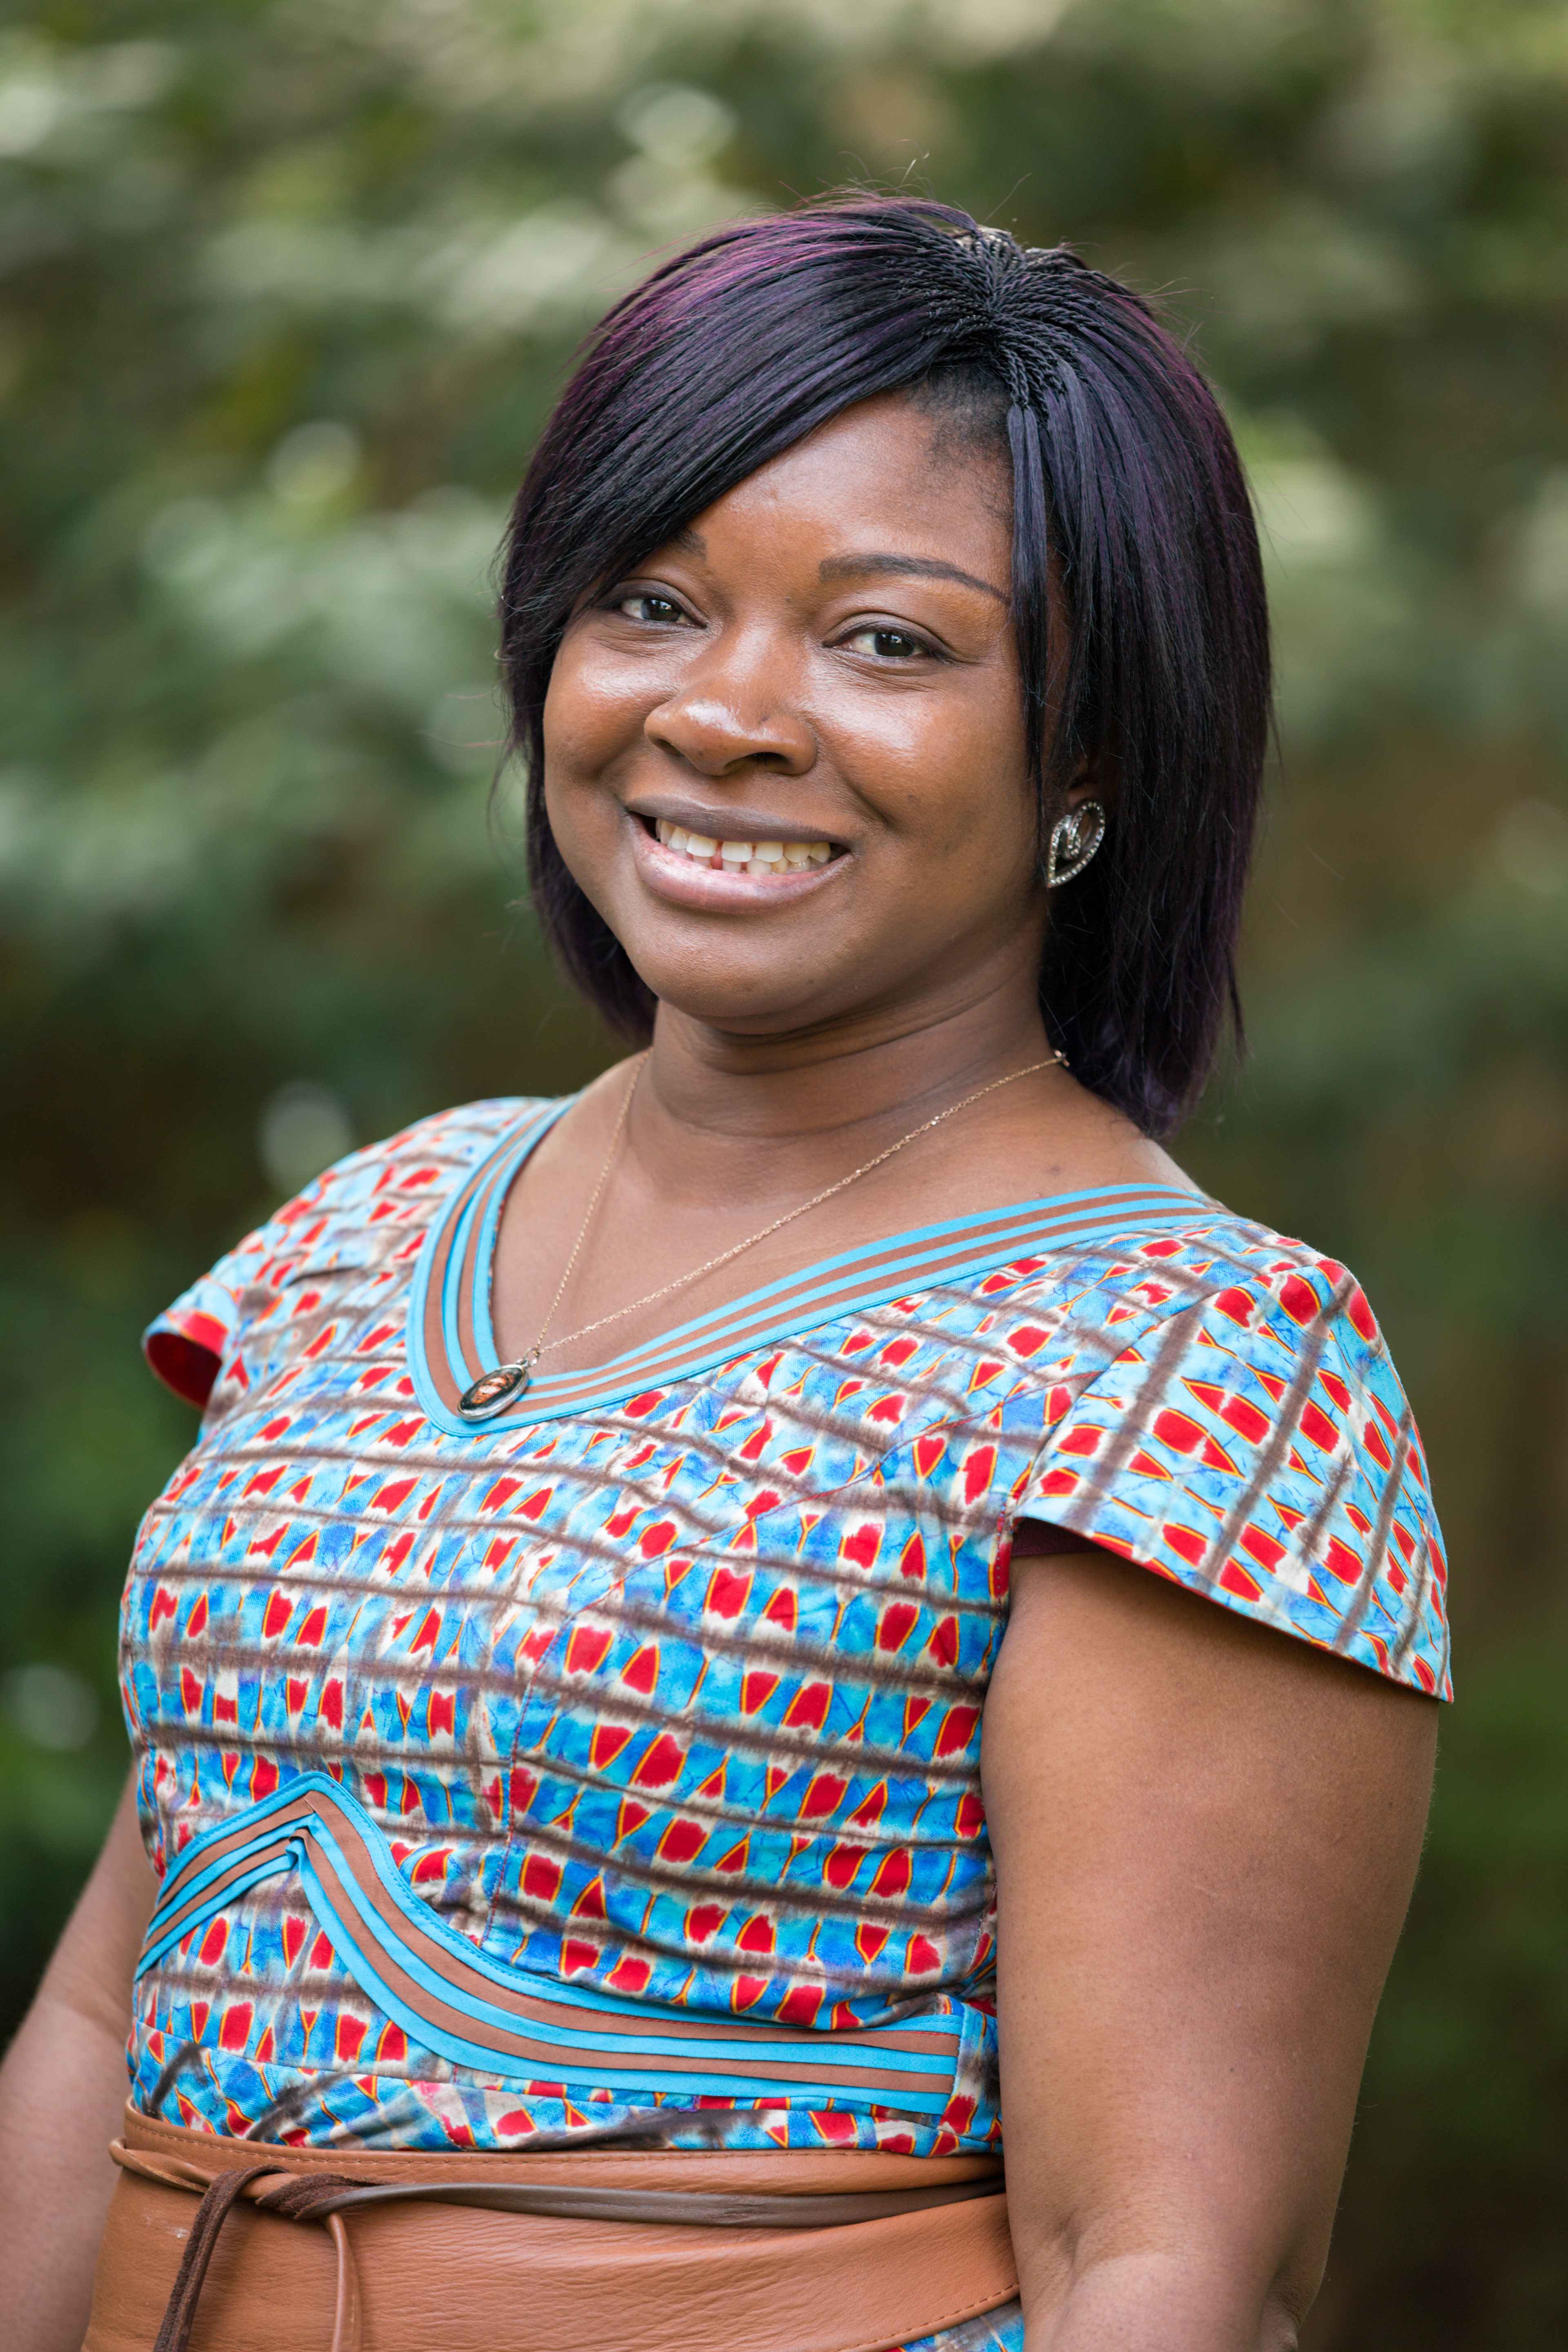 Anne-Marie Sawadogo, Project Officer, Education/Vocational Training, AFD, Burkina Faso